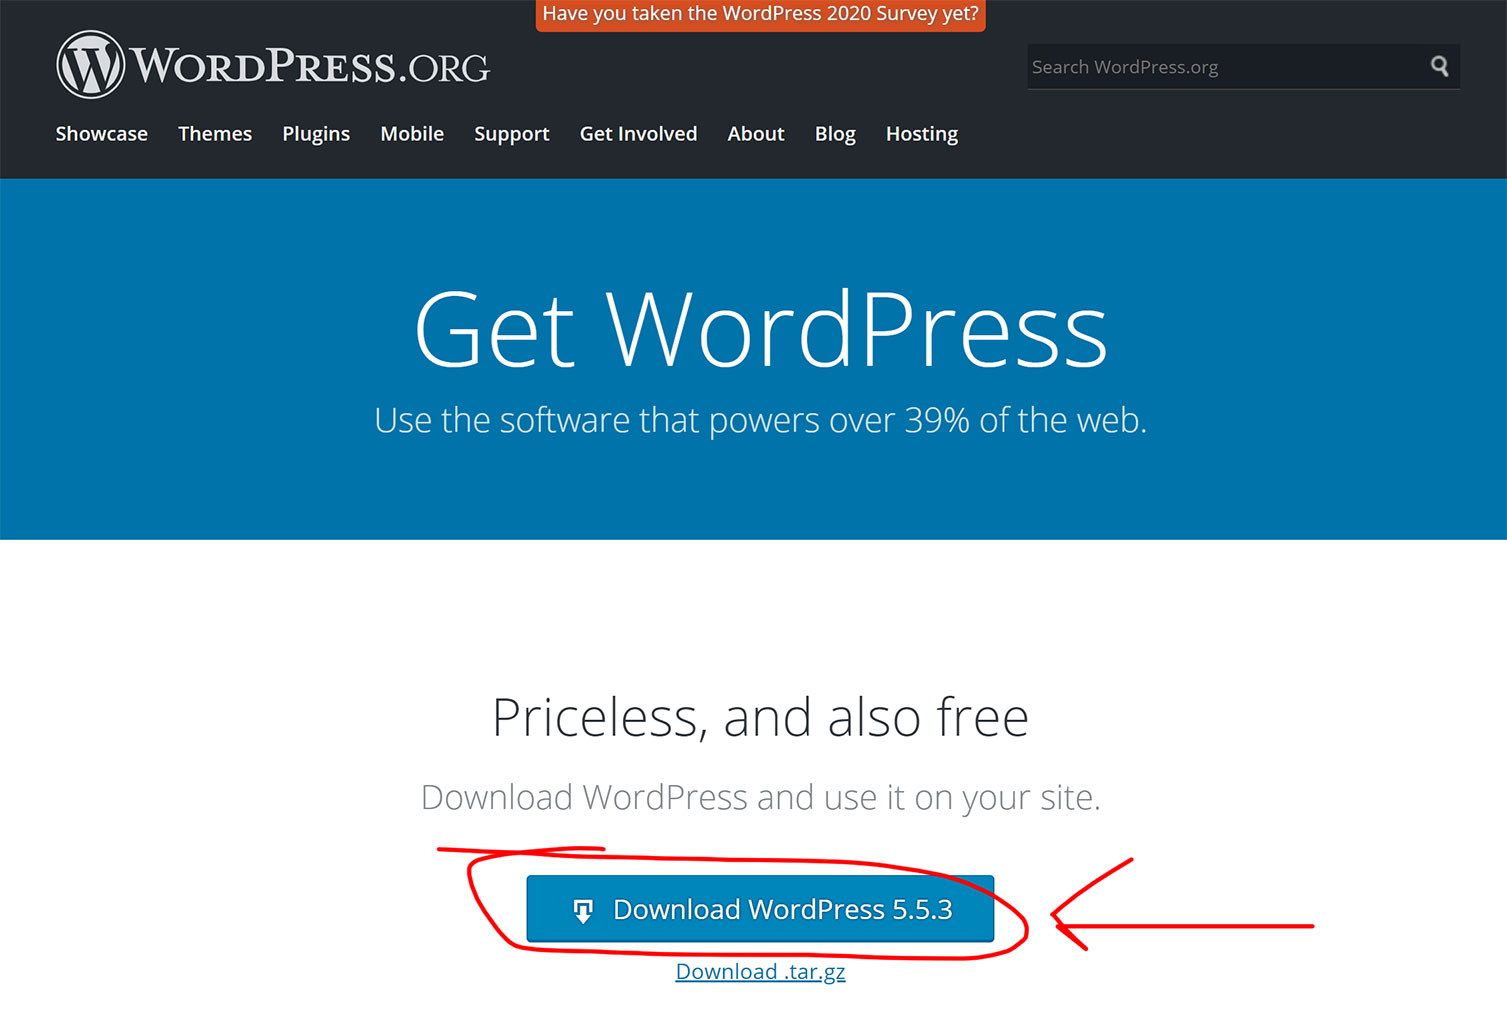 Wordpress org 下載 WP 主程式